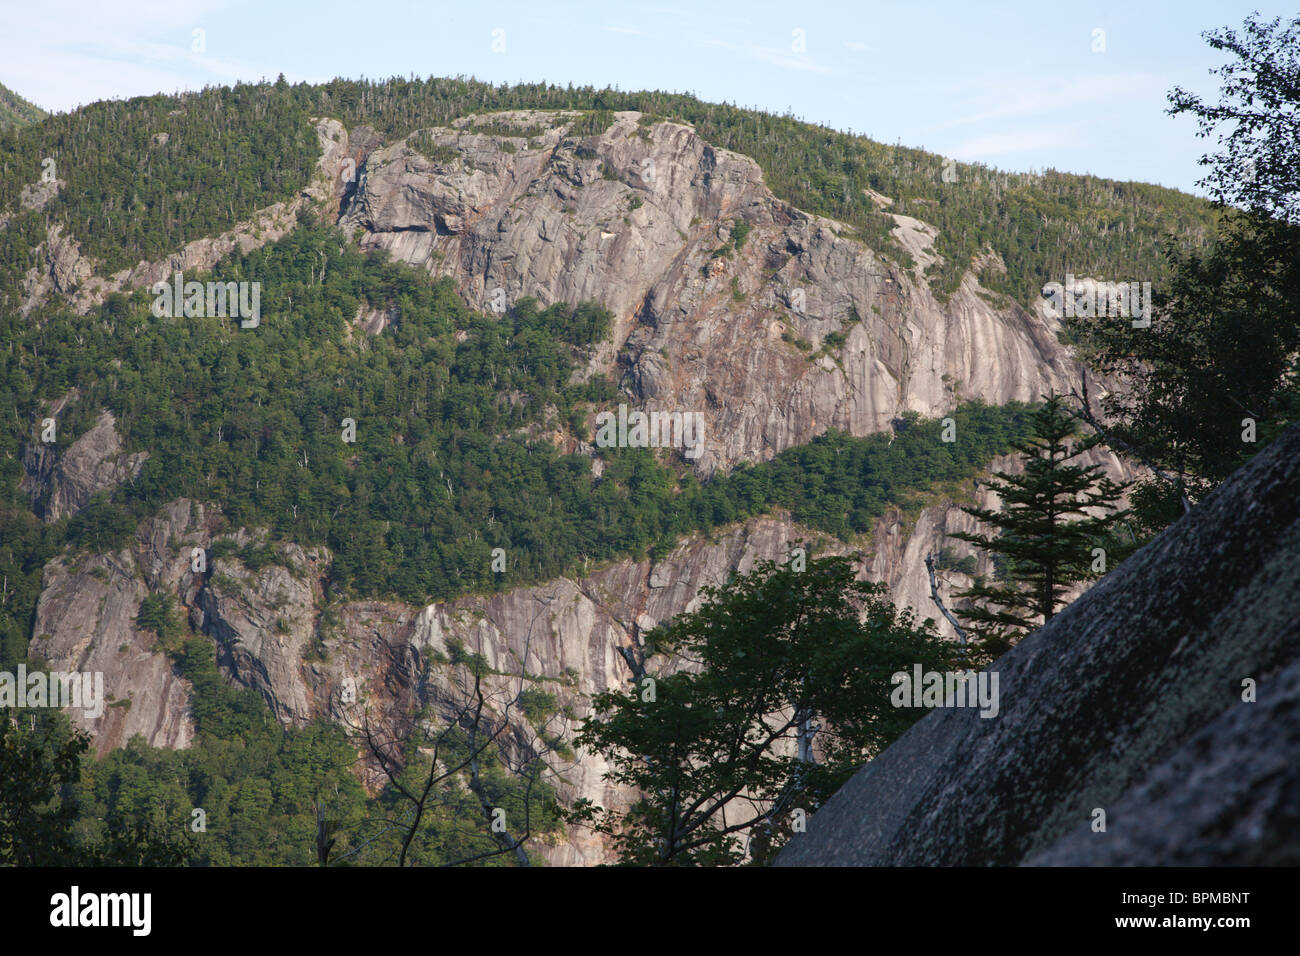 Crawford Notch State Park - Mount Willard in the White Mountains, New Hampshire USA. Stock Photo